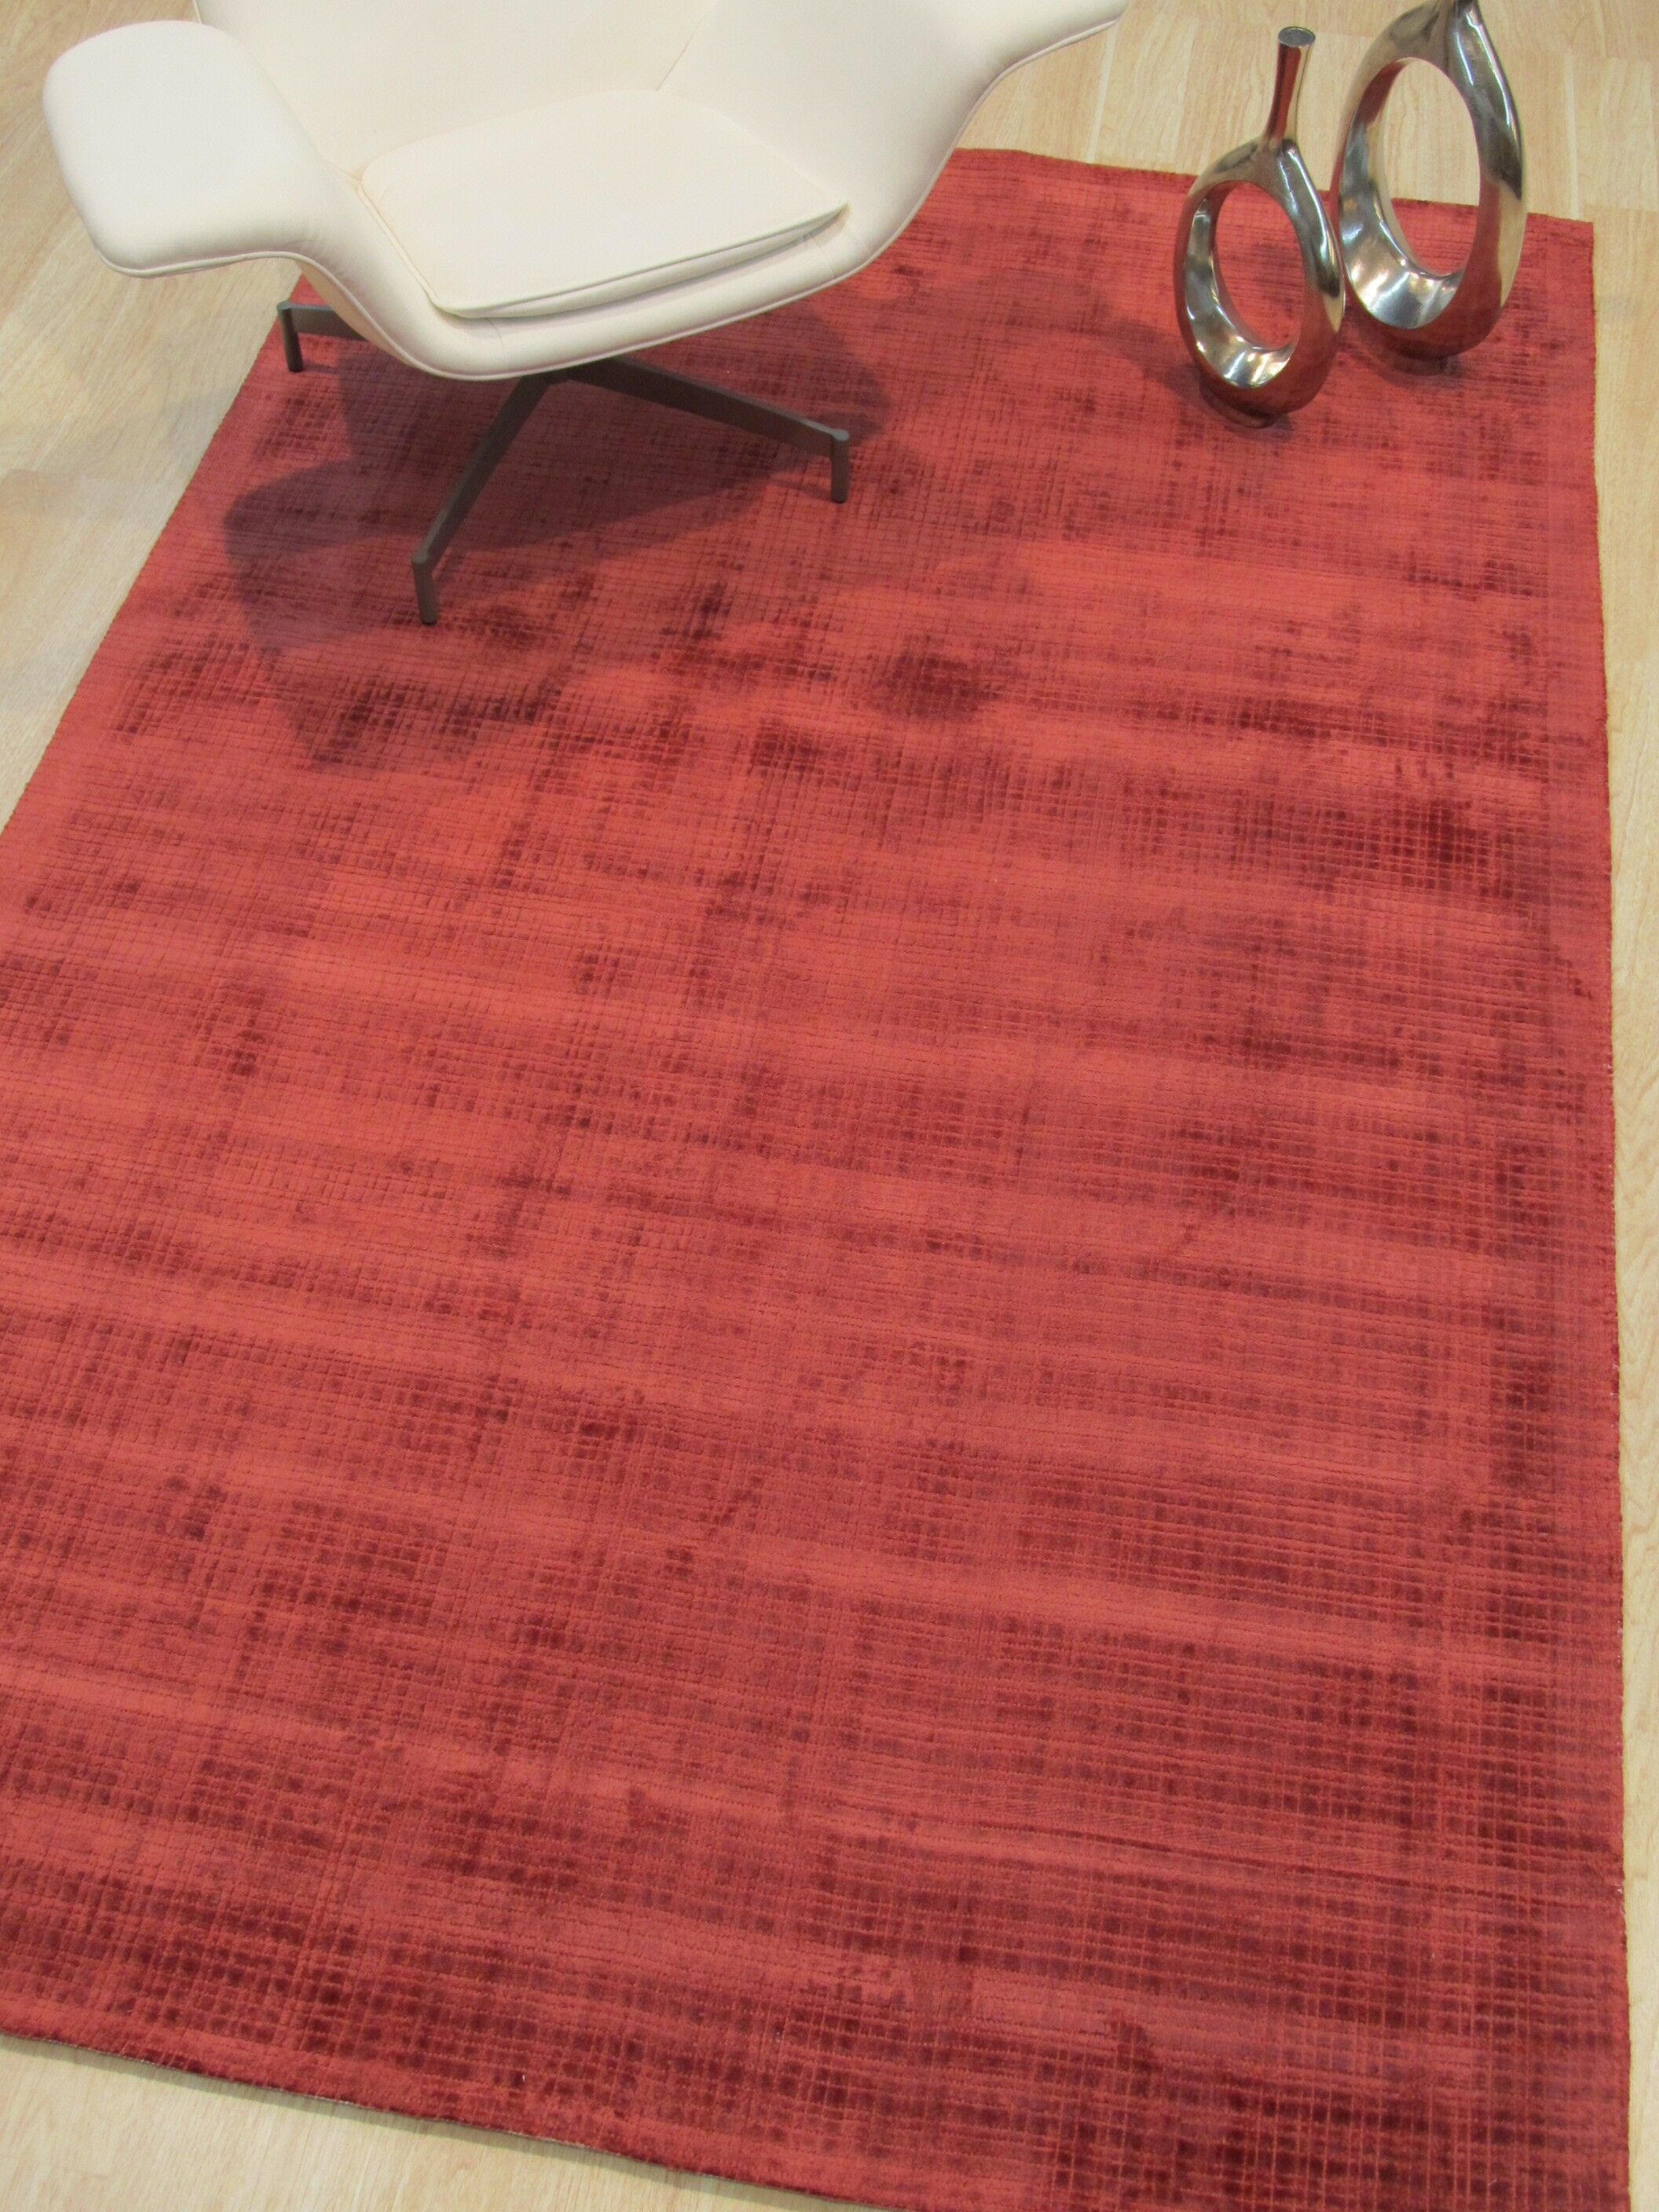 Clarissa Hand-Woven Red Area Rug Rug Size: Rectangle 8'9